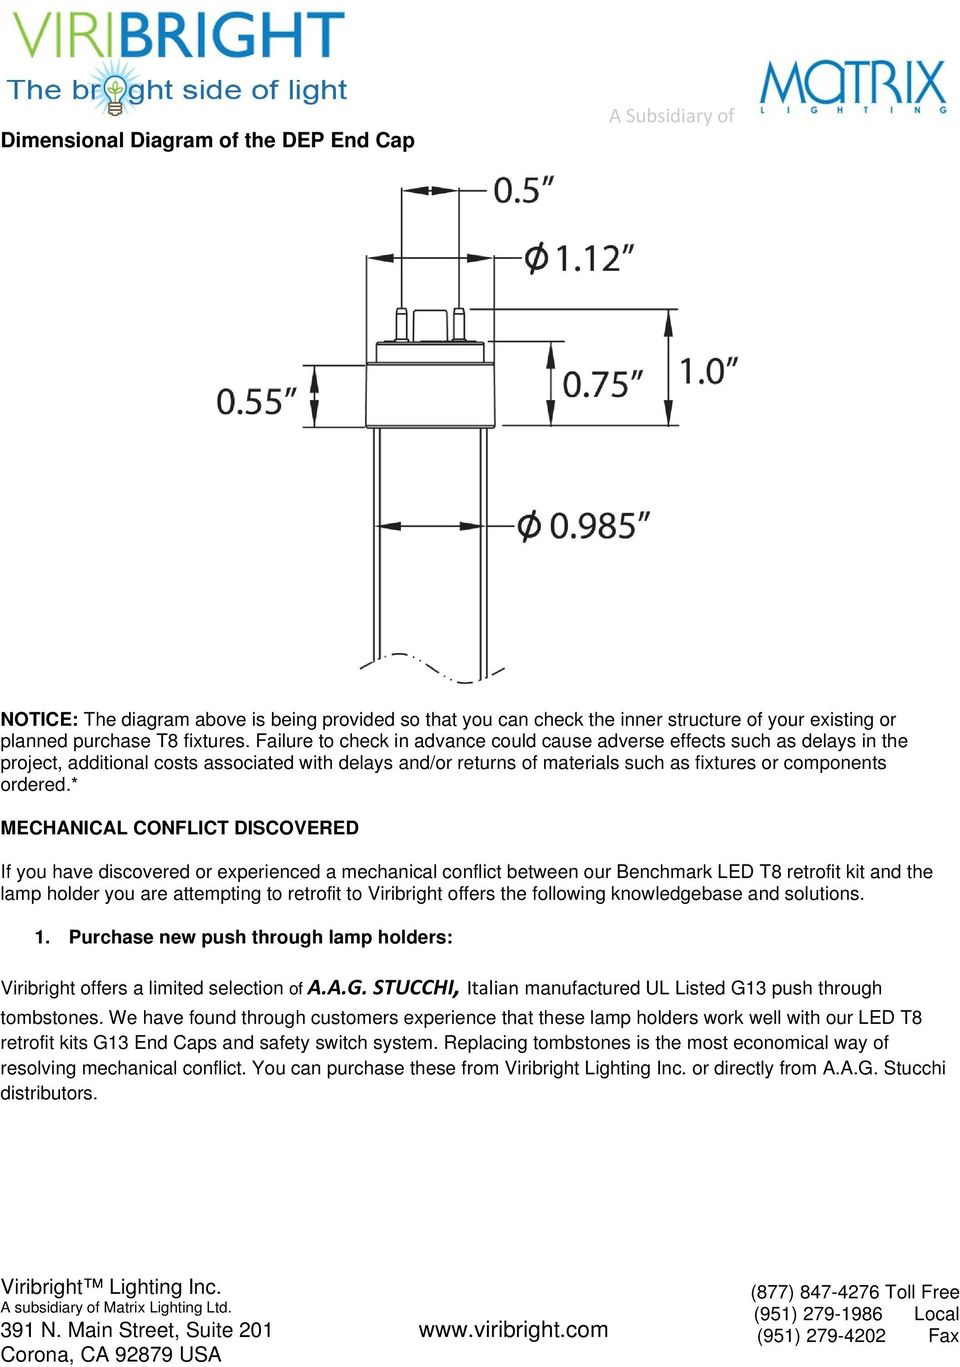 Led T8 Pre Purchase Selection Guide Pdf Convert T12 To Wiring Diagram Mechanical Conflict Discovered If You Have Or Experienced A Between Our Benchmark